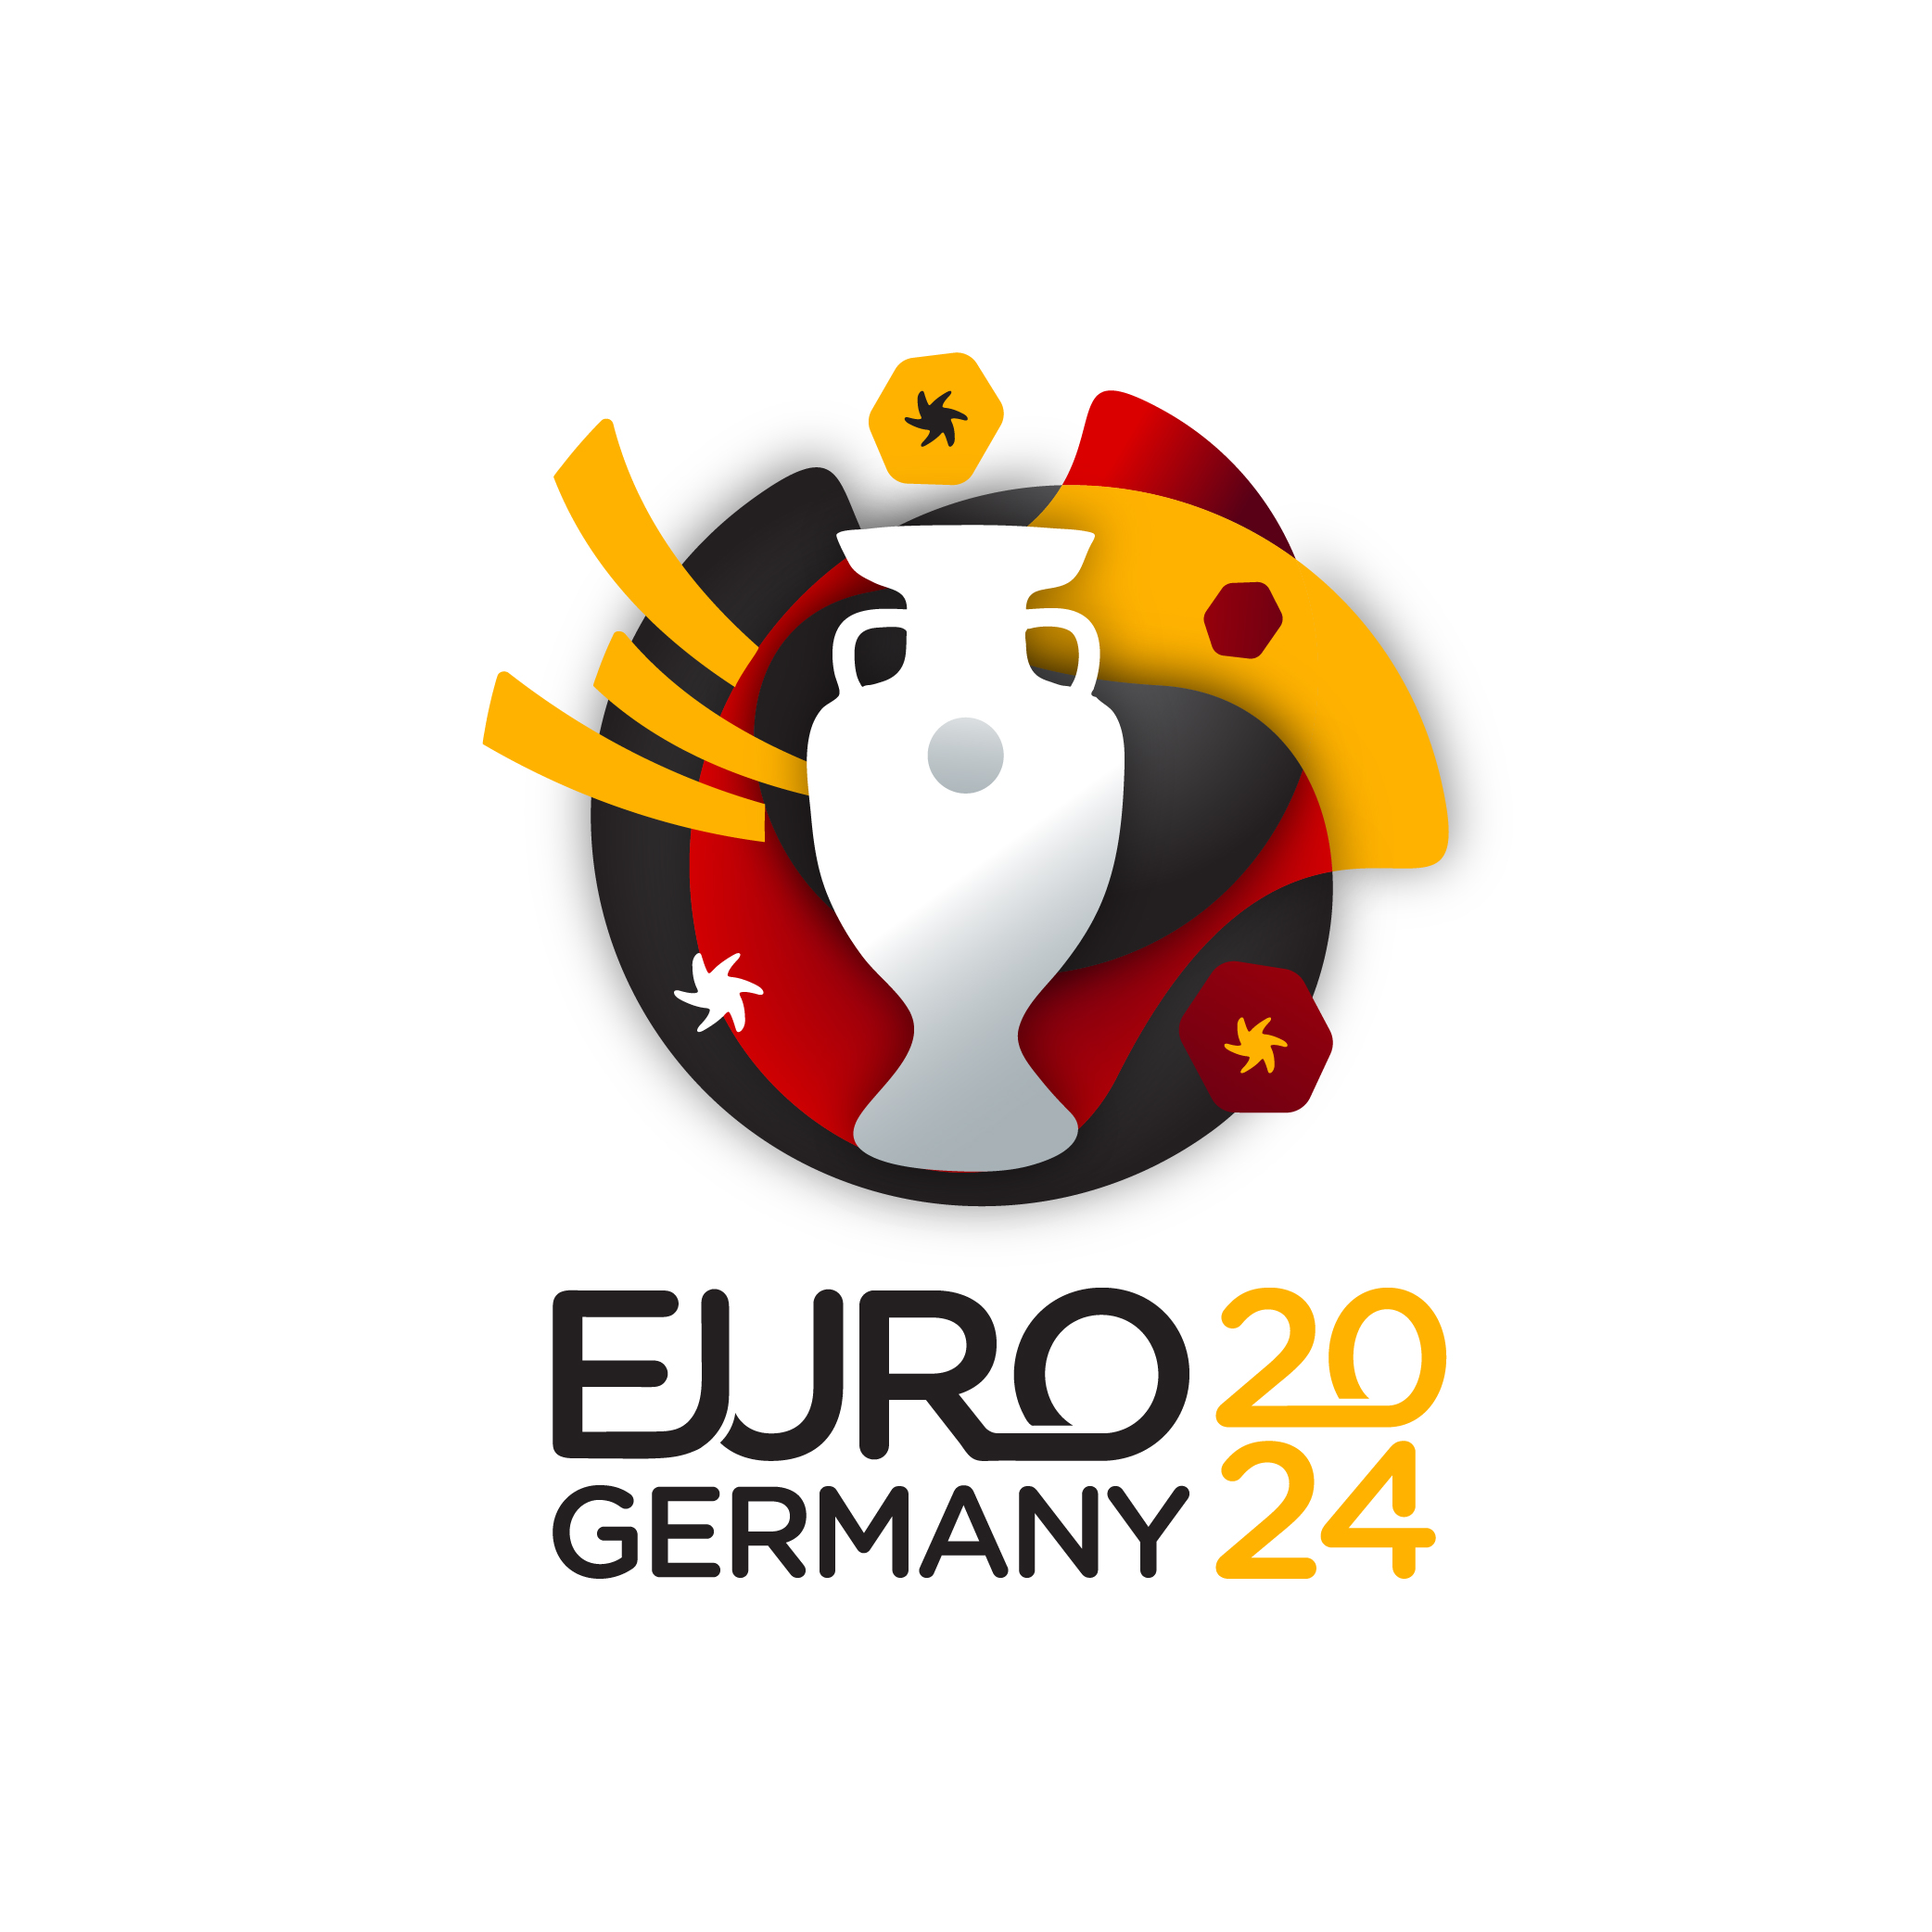 jovoto euro 2024 logo proposal aim shoot score your 2024 bid logo deutscher fussball bund jovoto euro 2024 logo proposal aim